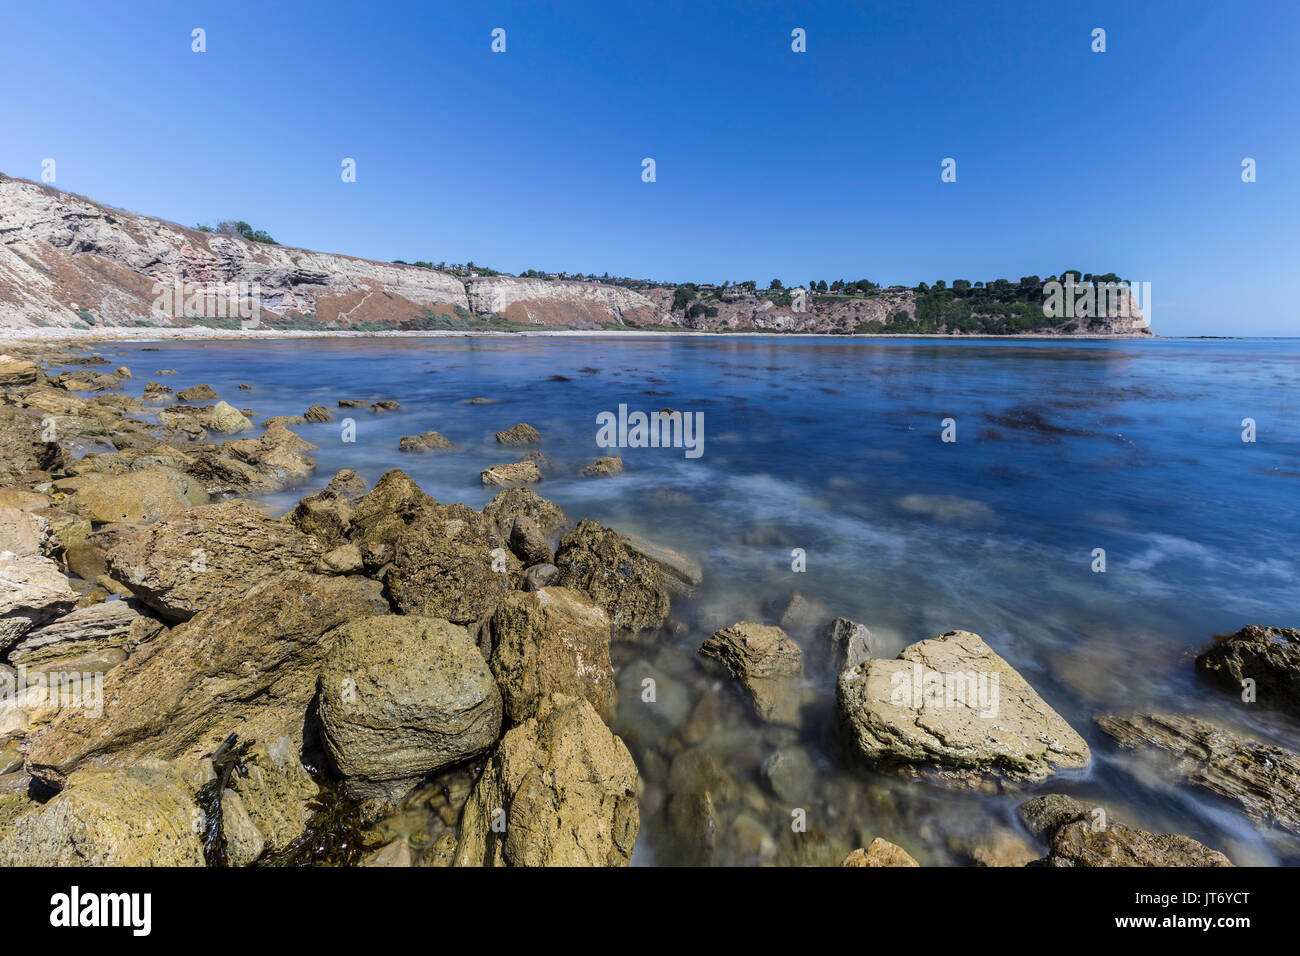 Lunada Bay with motion blur waves in the Palos Verdes Estates area of Los Angeles County, California. - Stock Image